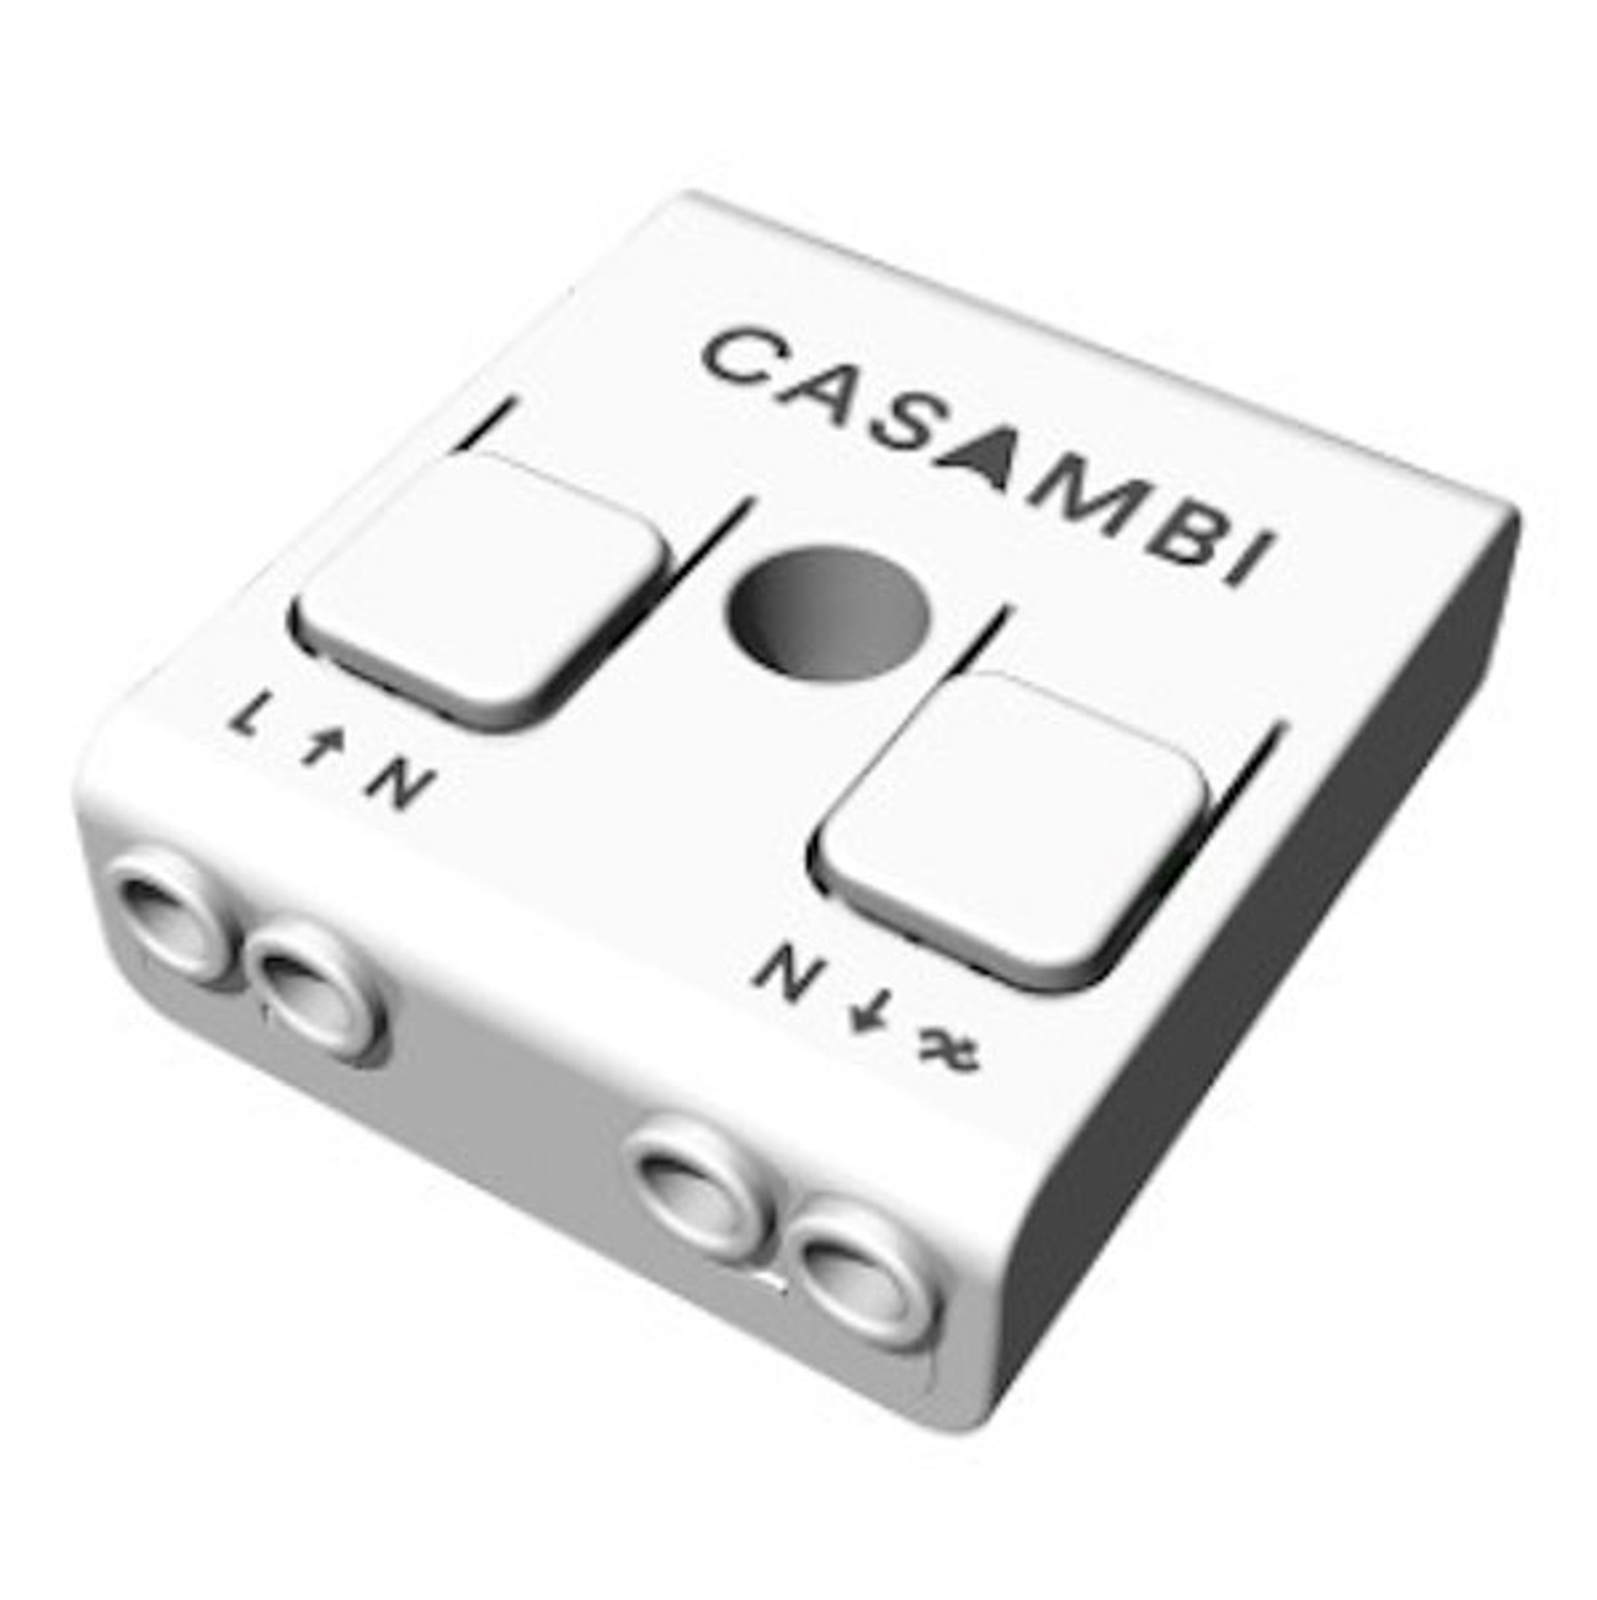 Faseavsnittdimmer for lampe Honey, Casambi